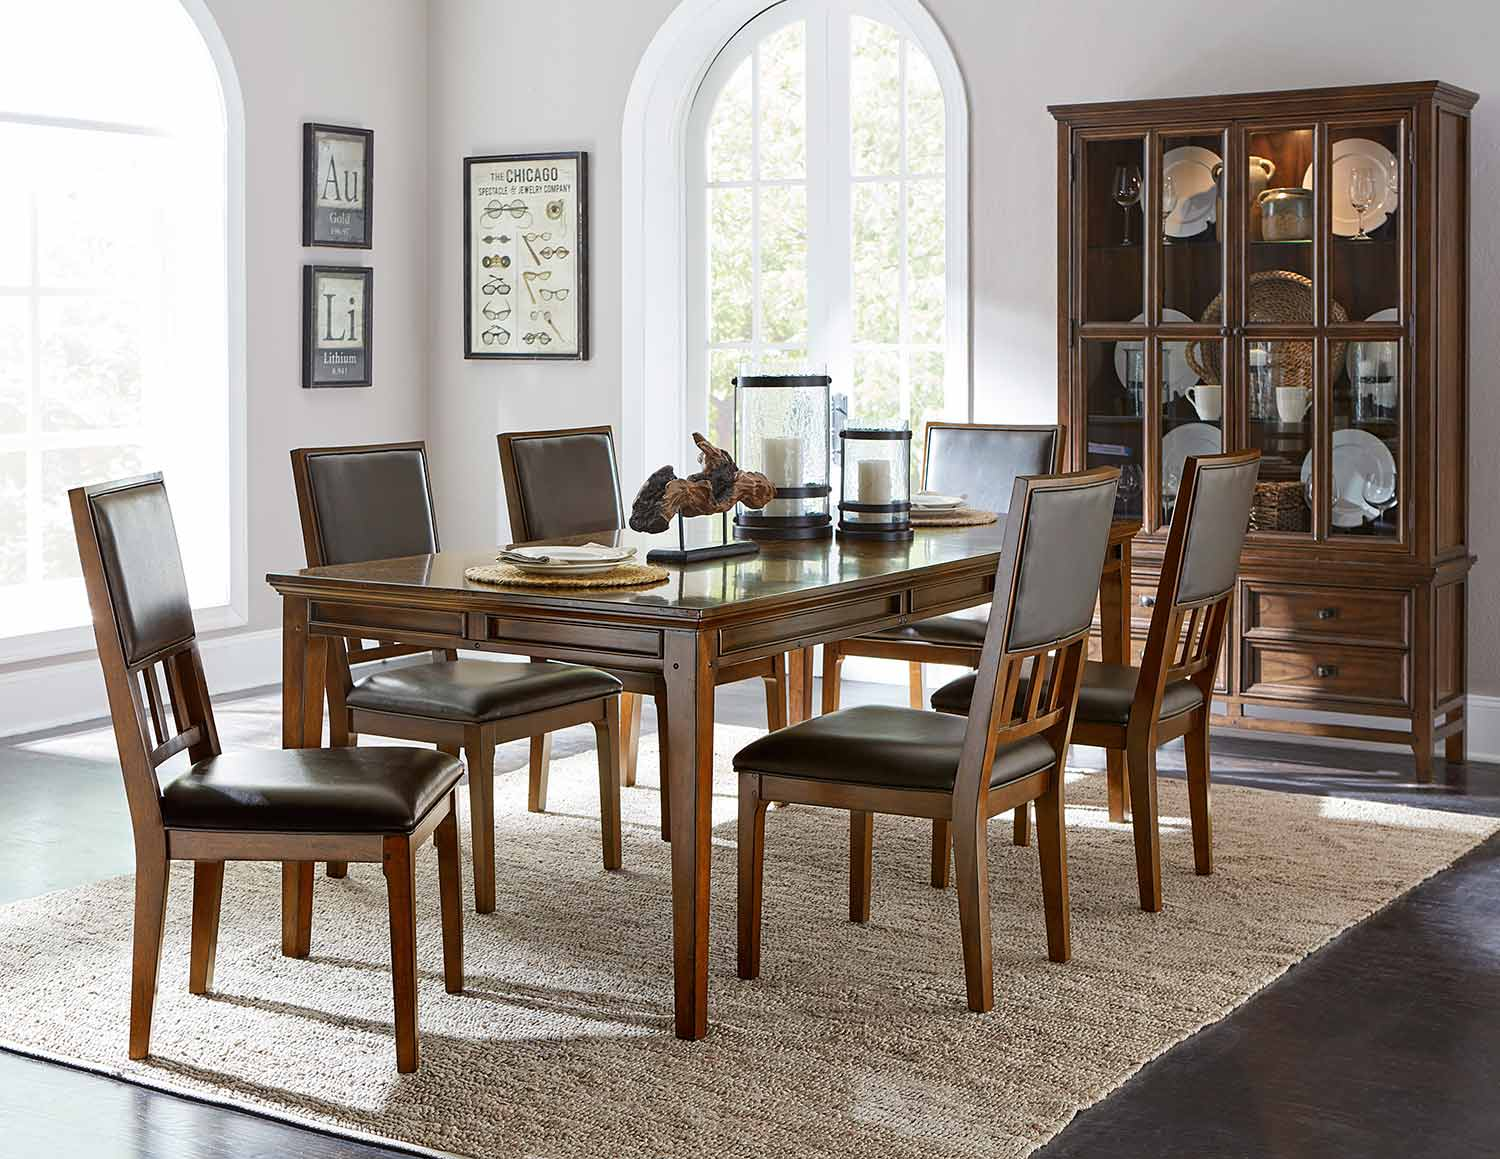 Homelegance Frazier Dining Set - Brown Cherry